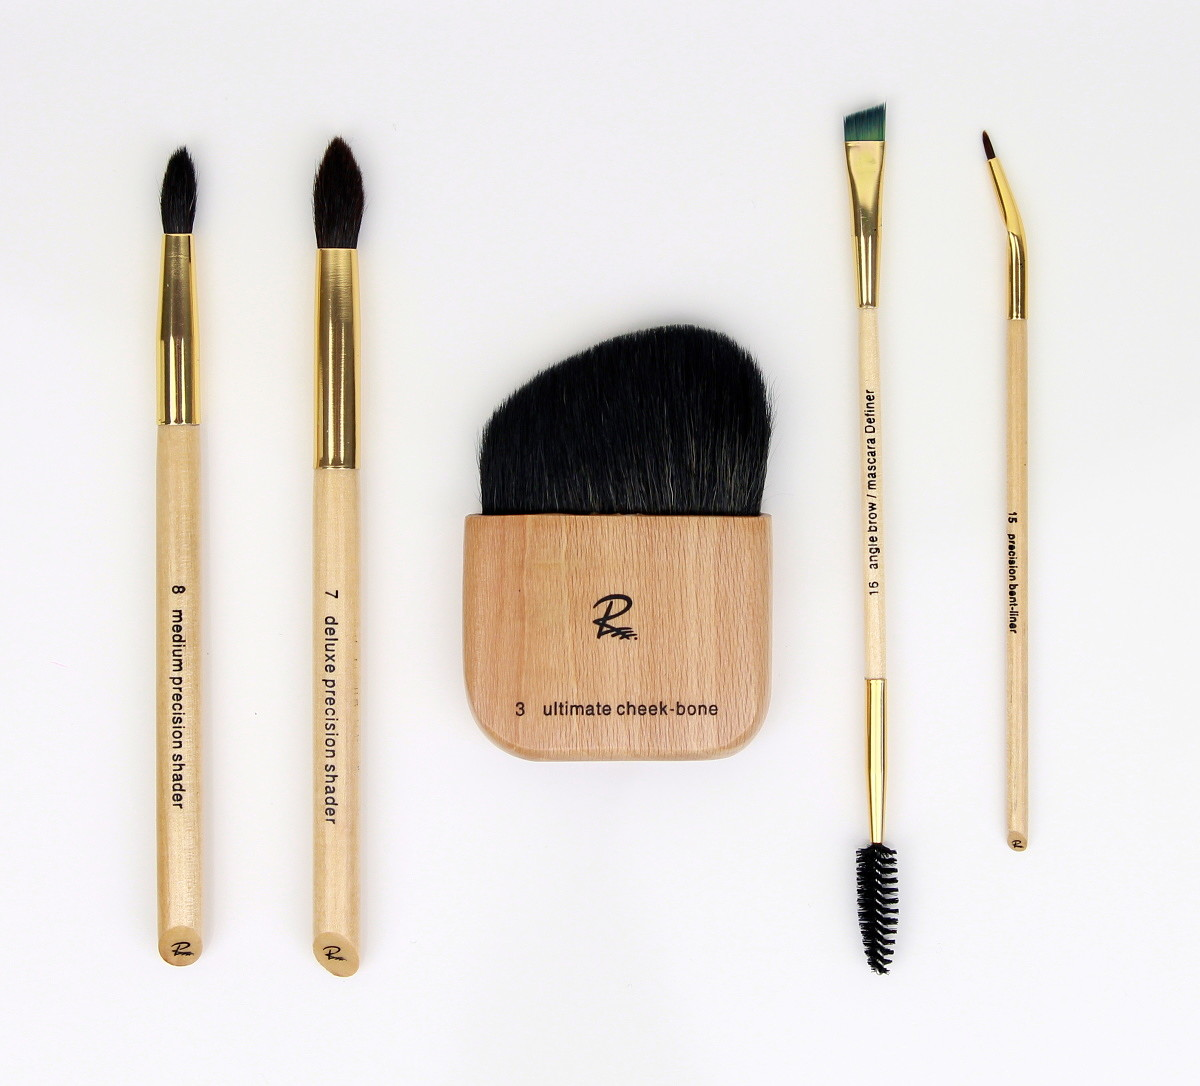 Rae Morris Ultimate Cheek-Bone Brush #3